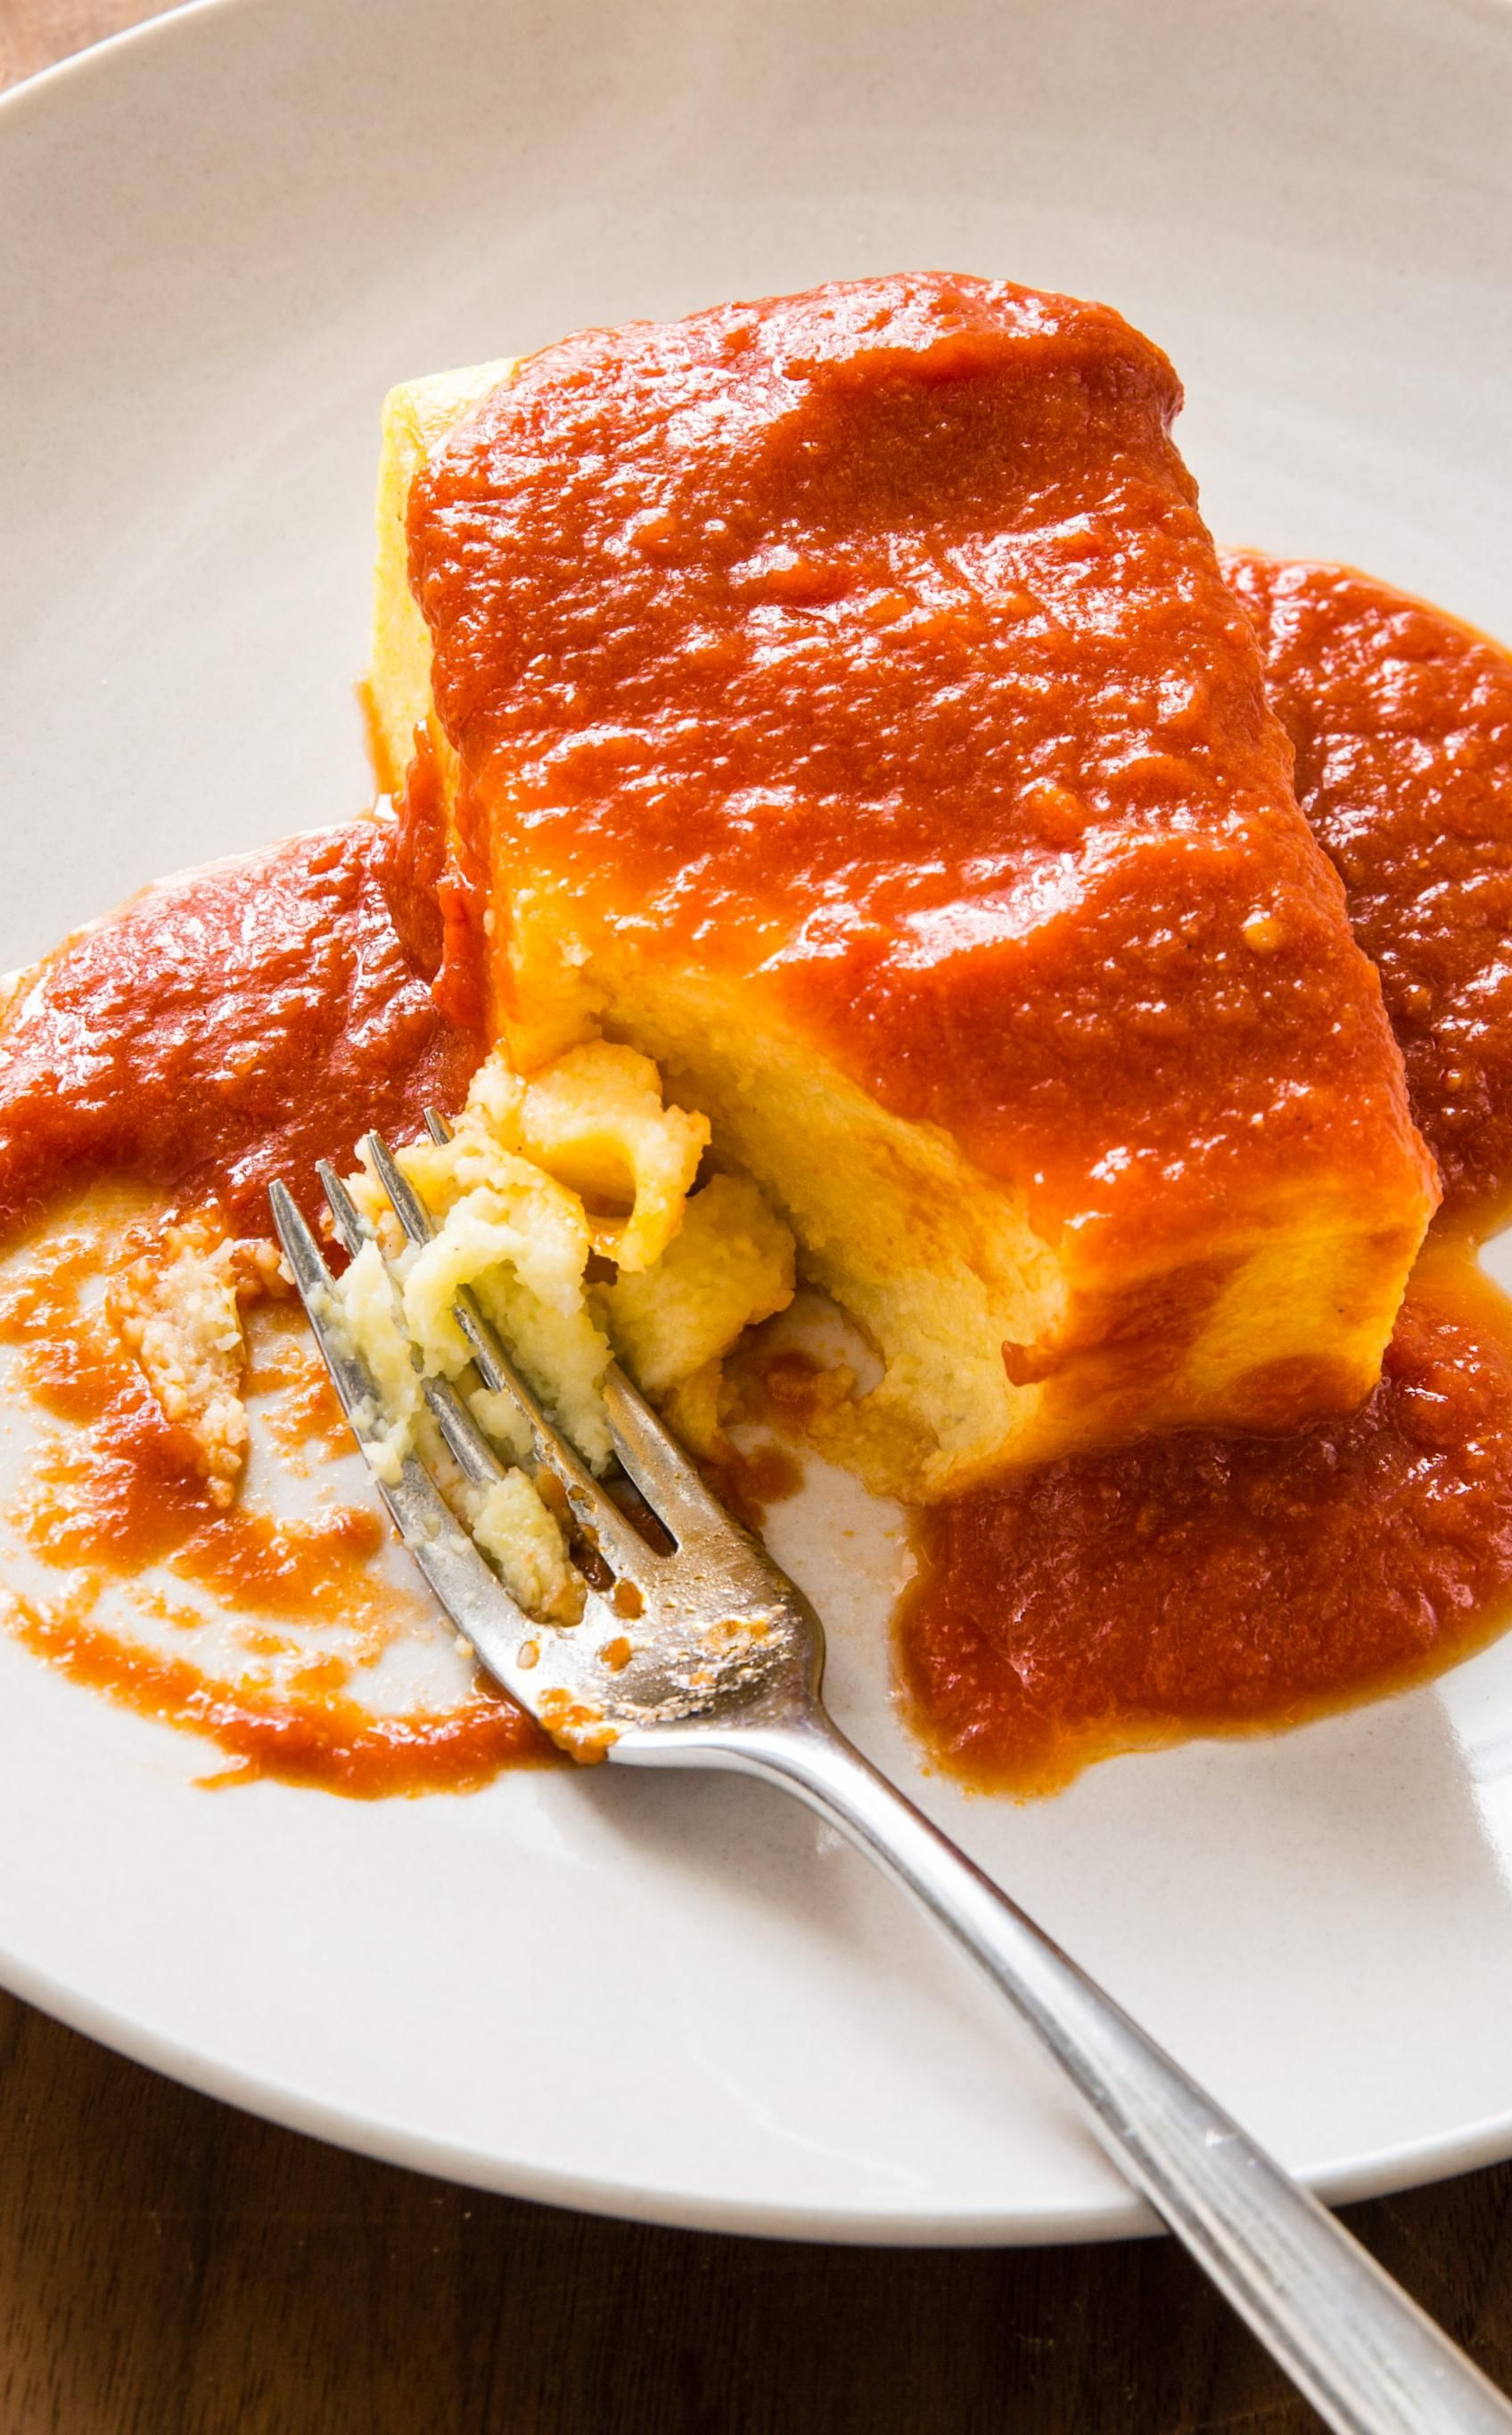 Baked Polenta With Red Sauce Inspired By Mike S Kitchen In Cranston Rhode Island This Baked Polenta Is Both Light And Satisfyi Baked Polenta Recipes Polenta